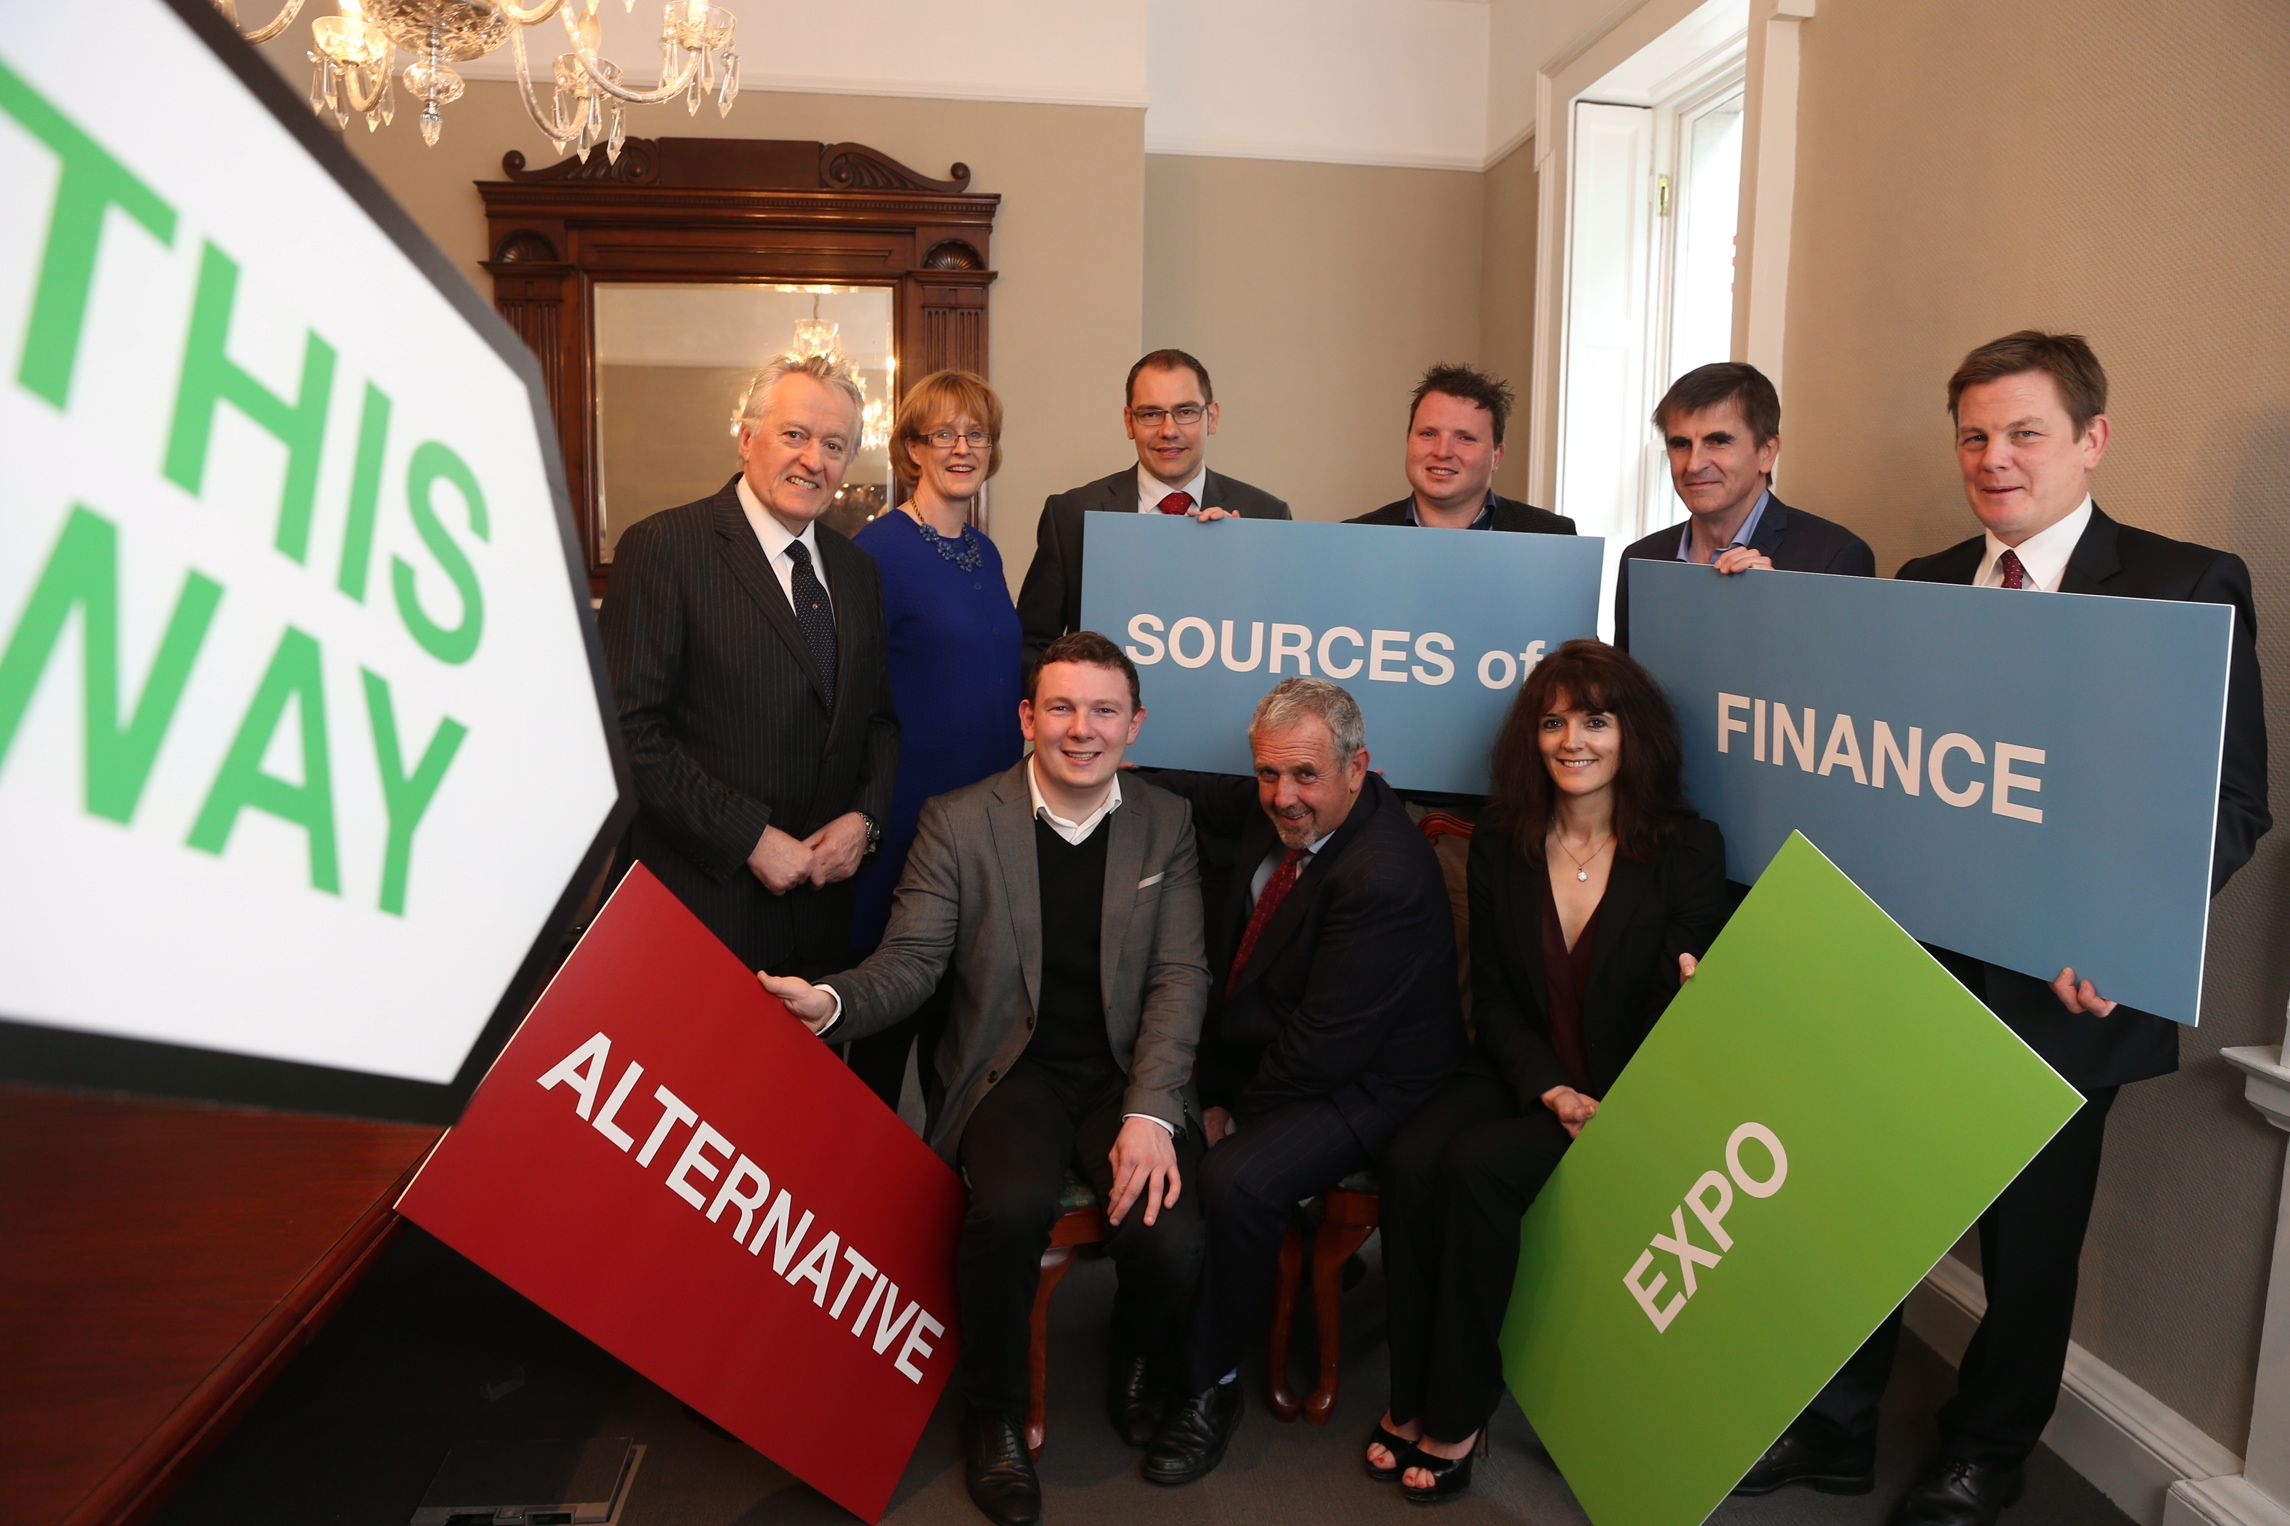 Alternative Sources of Finance Expo - Dublin West